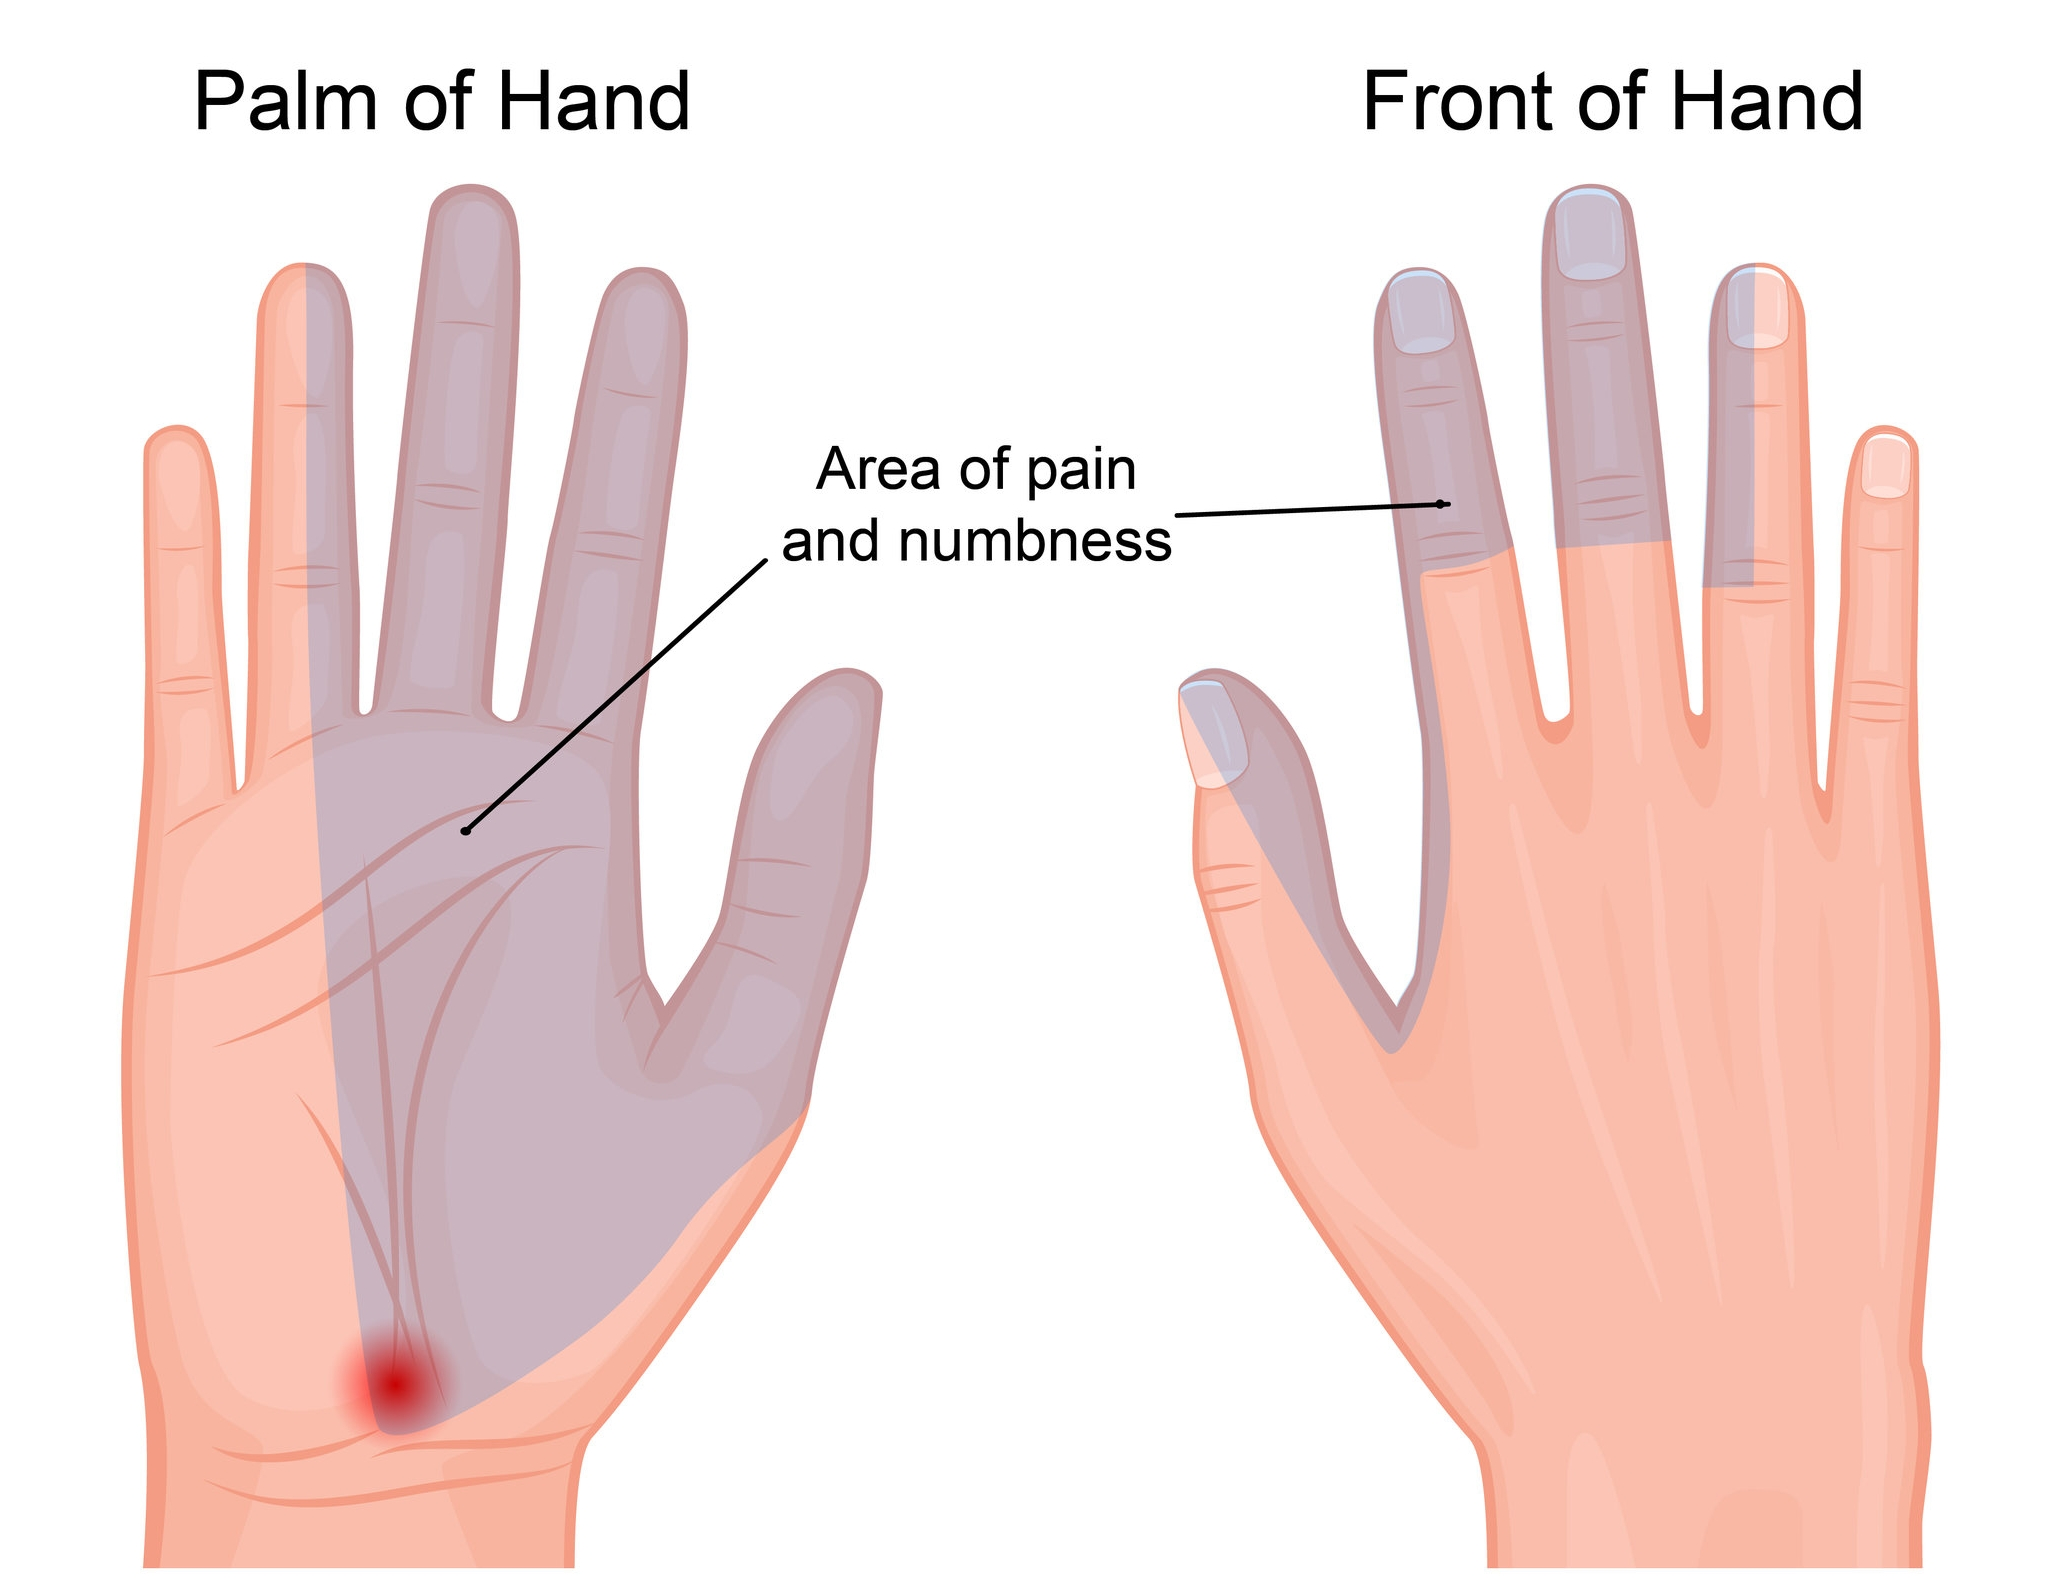 AreaArea of pain and numbness in hand that is caused by carpal tunnel